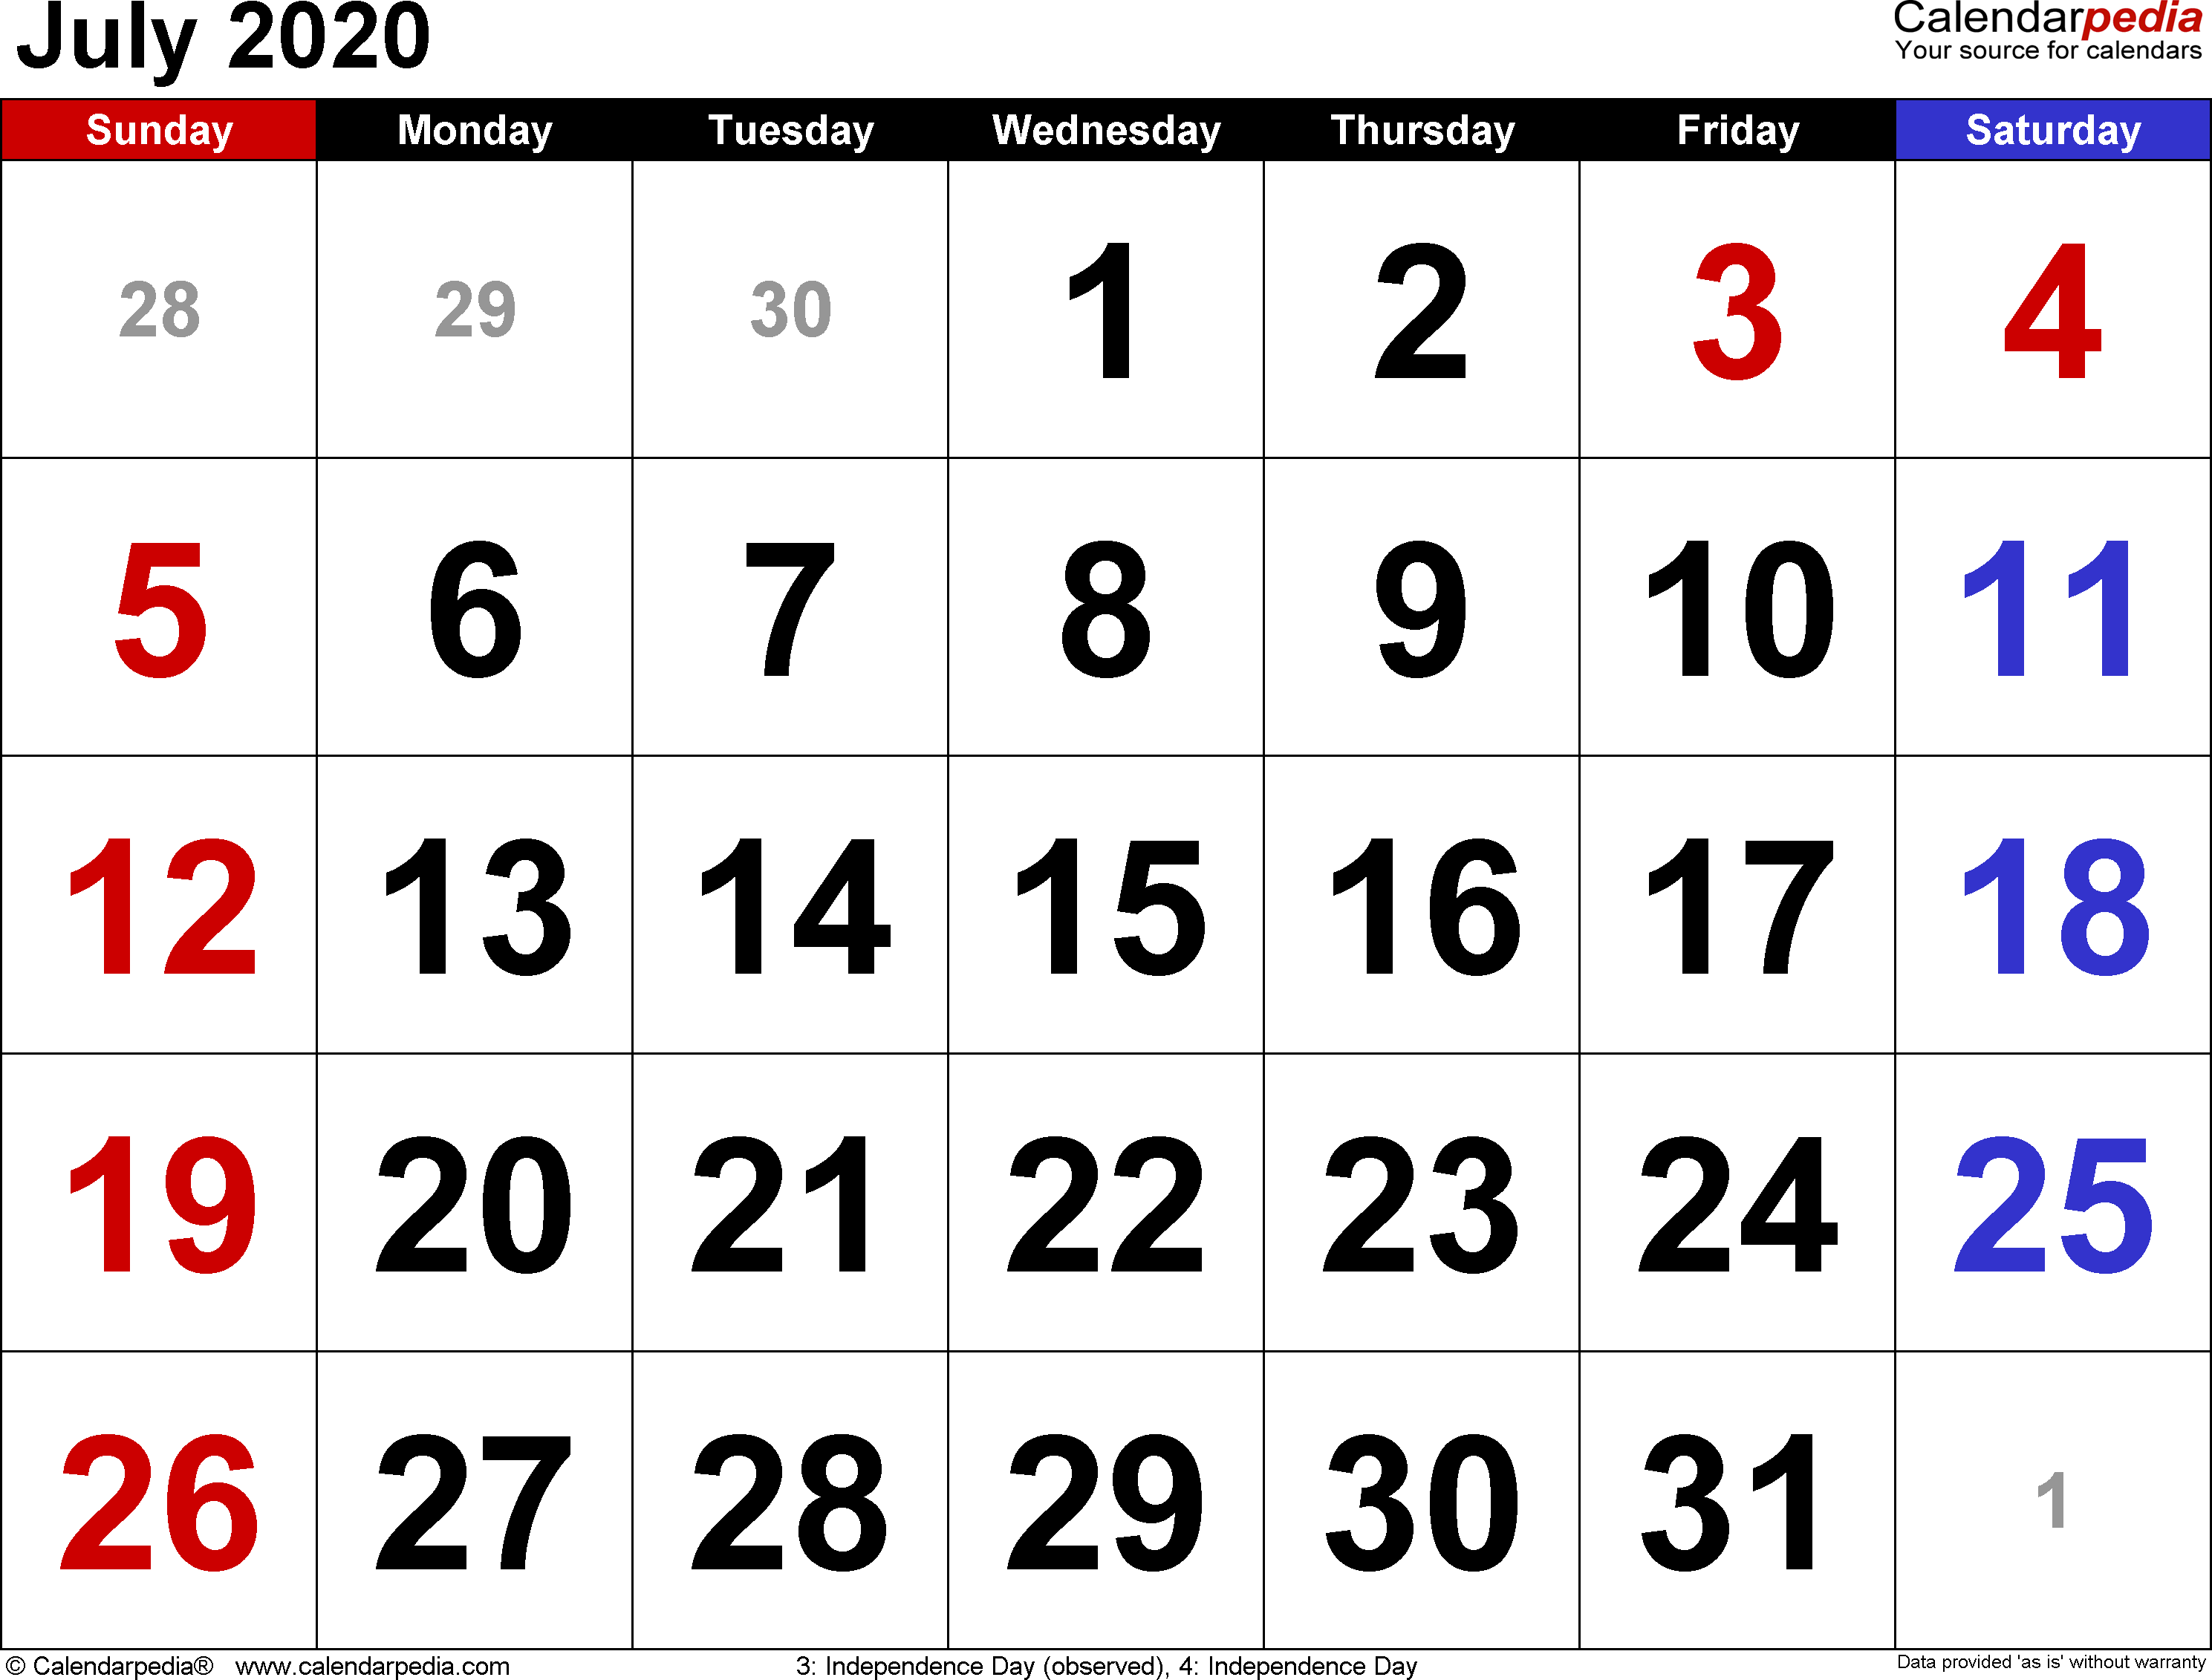 July Month Calendar 2020 July 2020 Calendars for Word, Excel & PDF